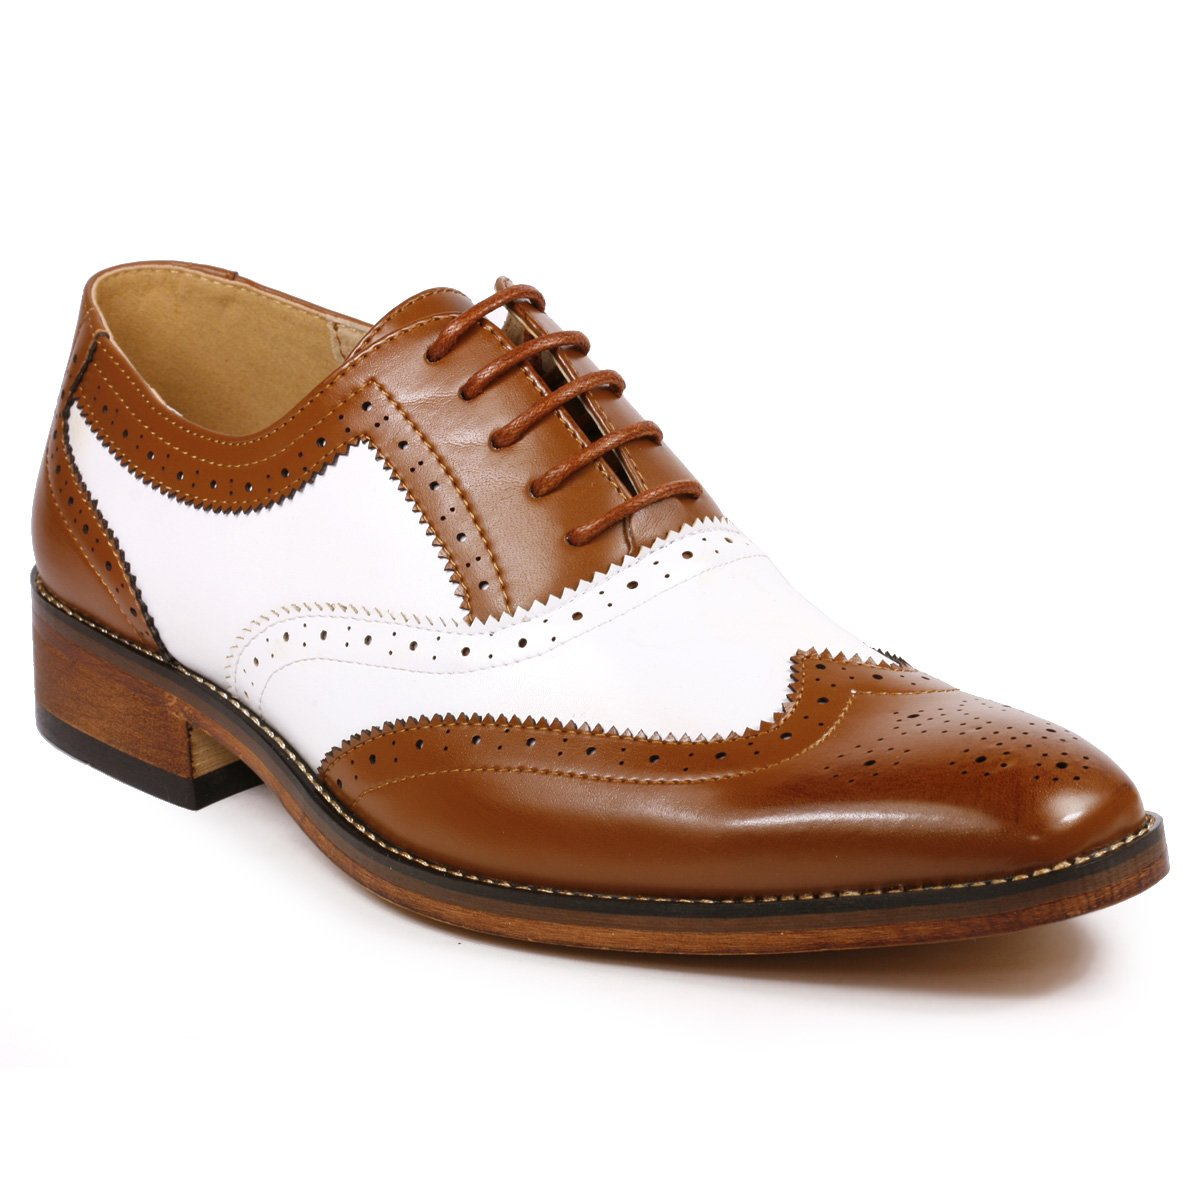 1920s Boardwalk Empire Shoes Mens Two Tone Perforated Wing Tip Lace Up Oxford Dress Shoes Metrocharm MC118  £47.49 AT vintagedancer.com